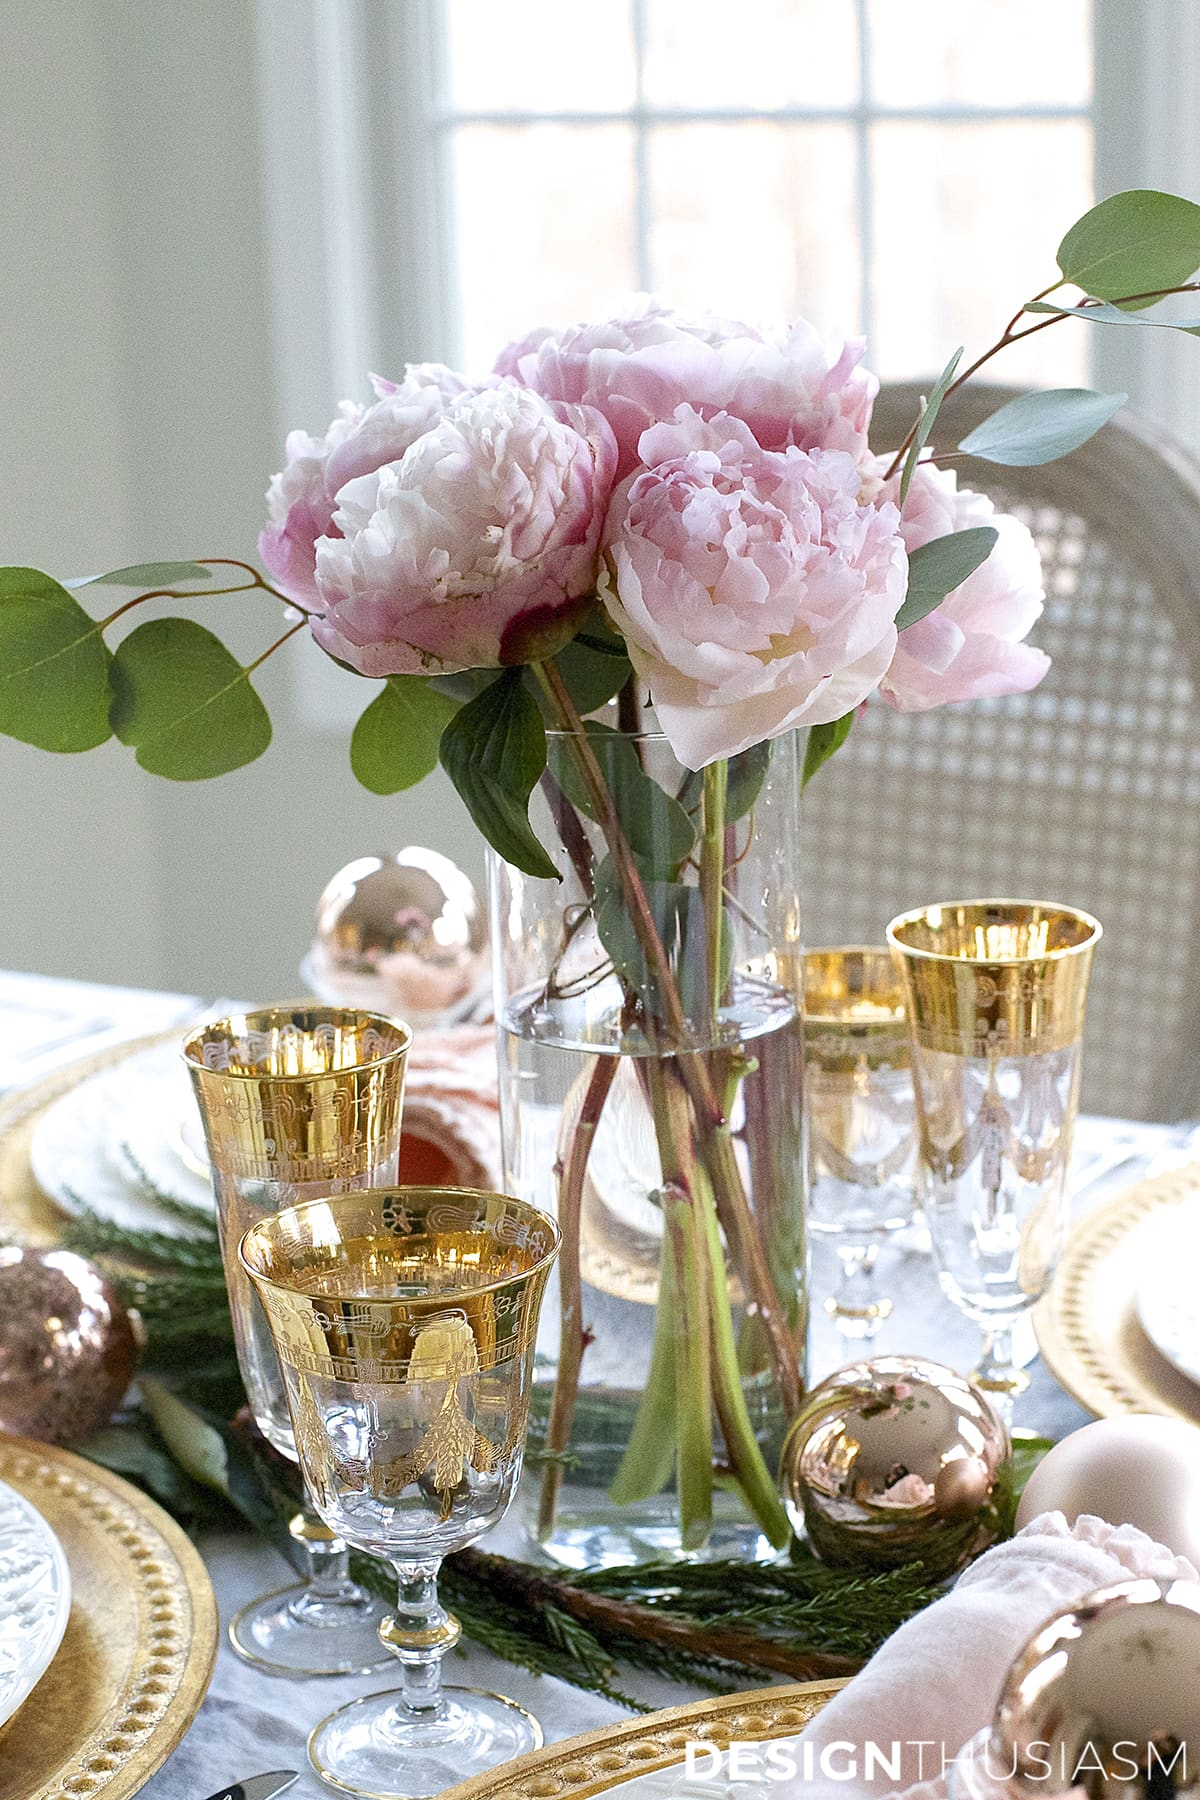 Elegant Christmas Table Setting in Pink and Gold | Designthusiasm.com & Elegant Christmas Table Setting with Pink and Gold